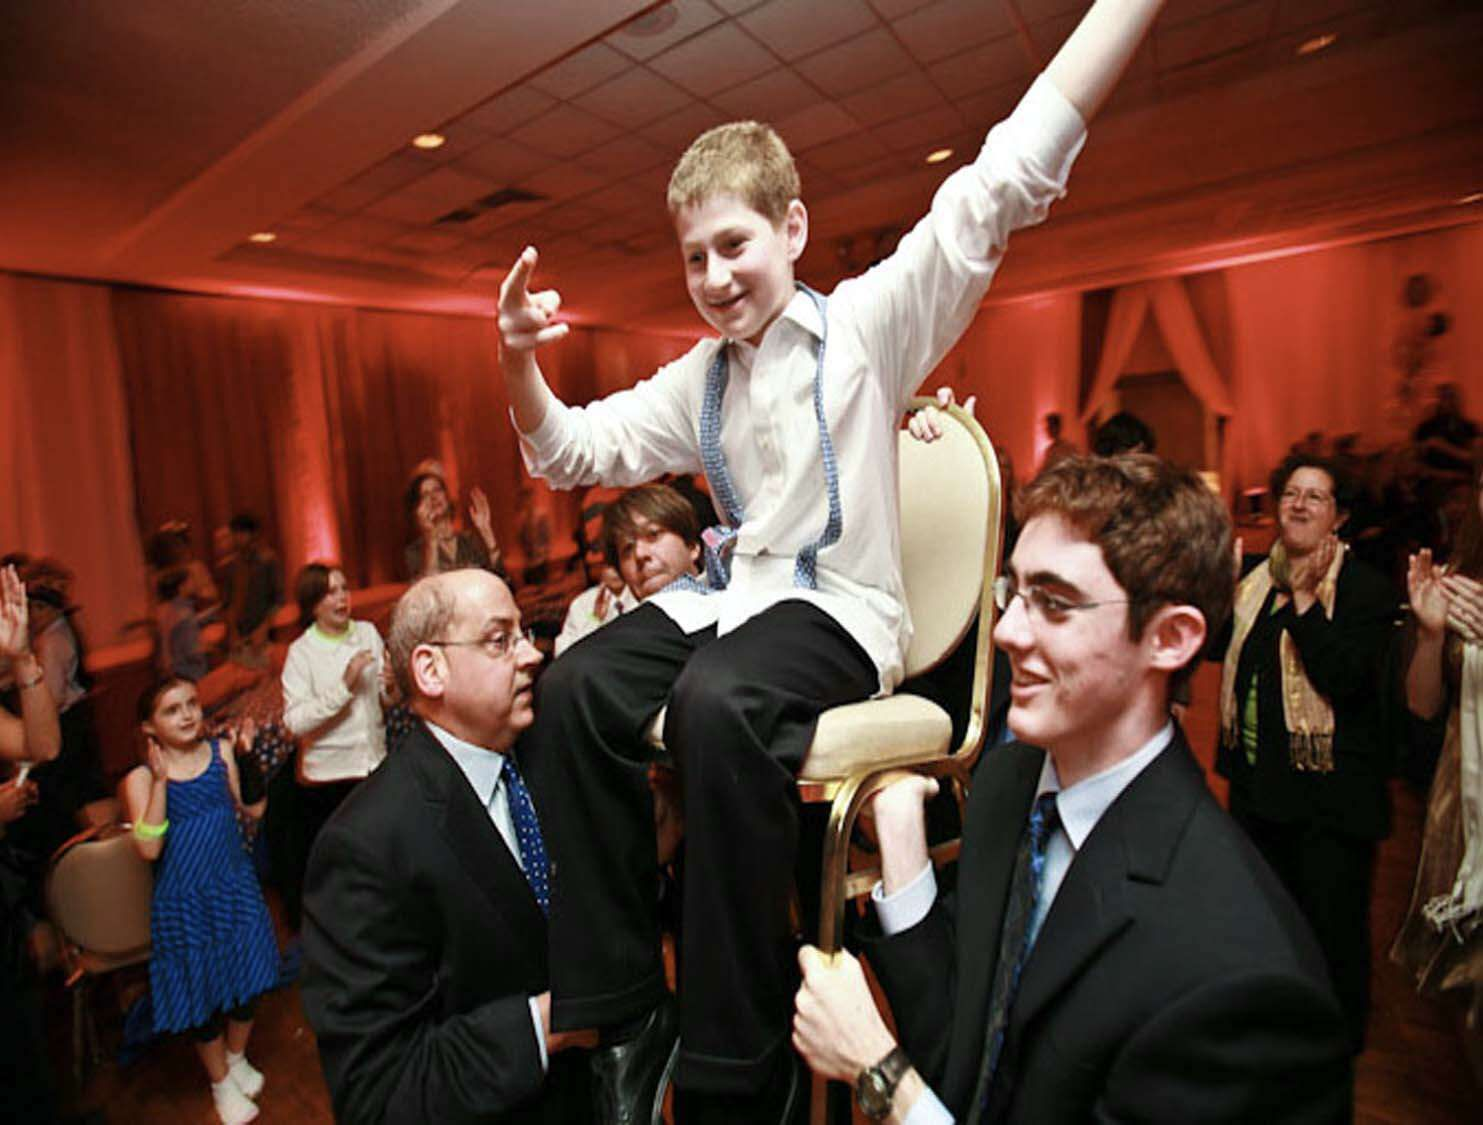 To acquire Wear to what to bar mitzvah boy picture trends